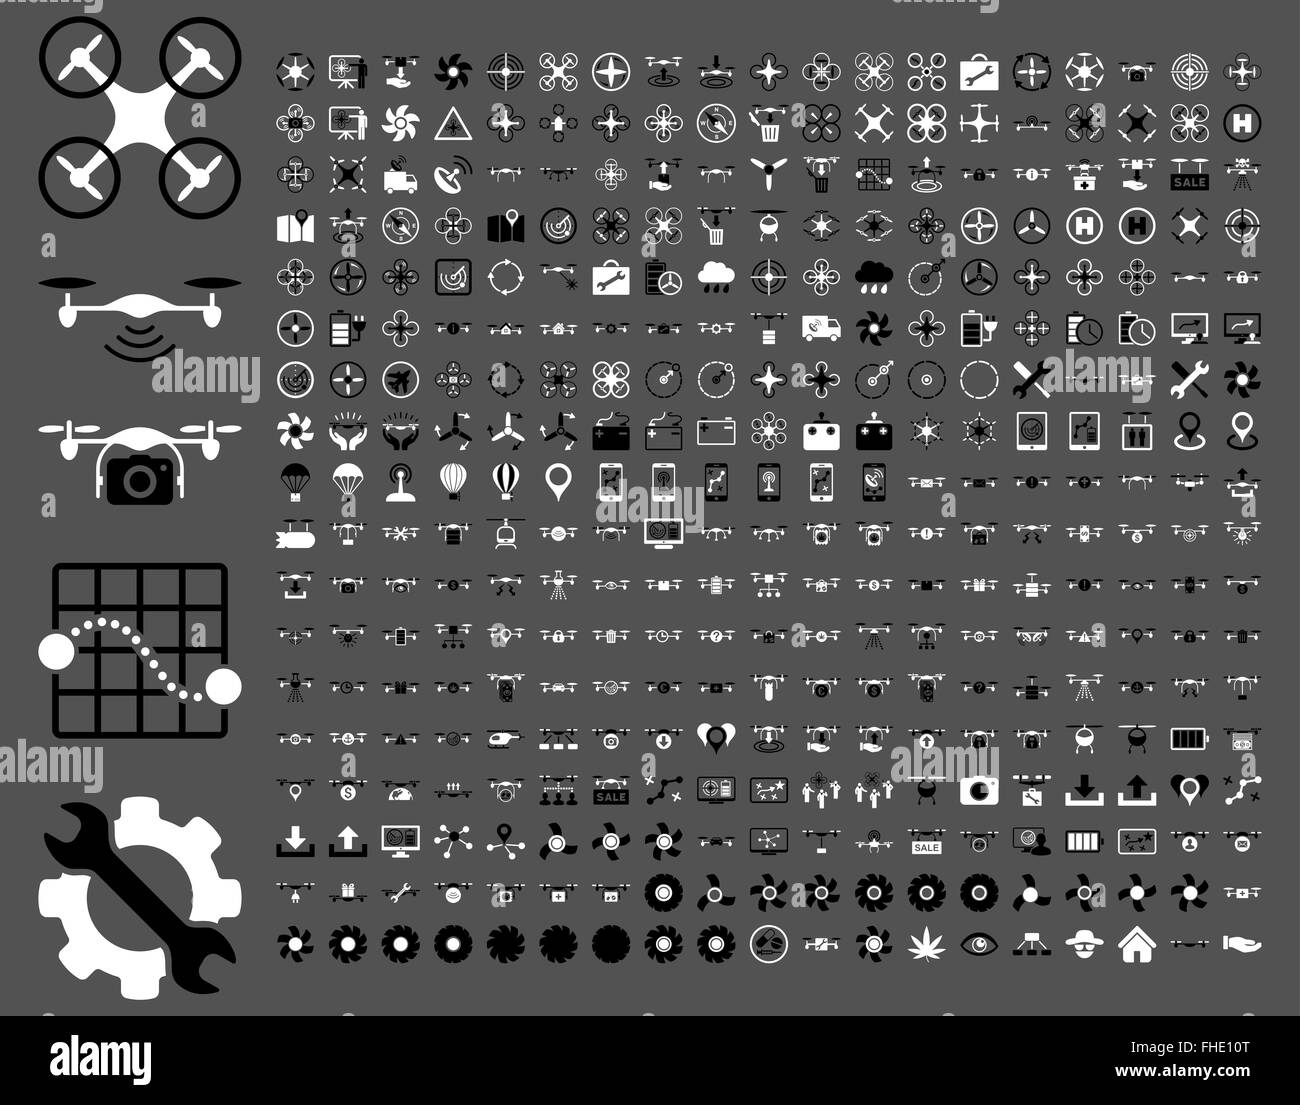 Air drones and quadcopter tools icons - Stock Image